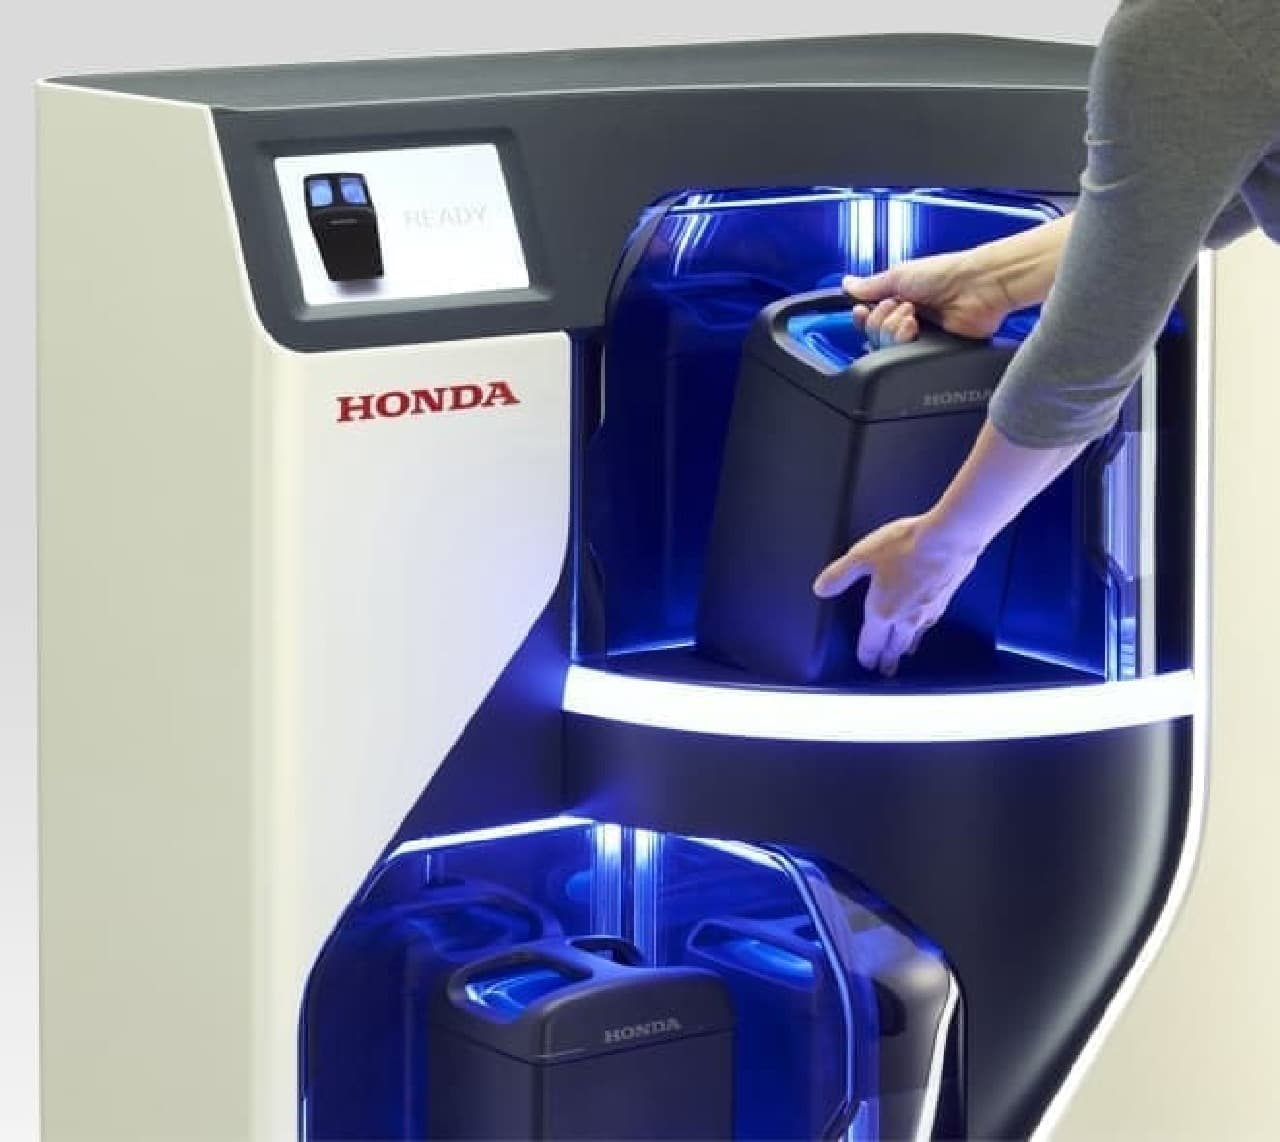 Honda Mobile Power Pack Exchanger Concept